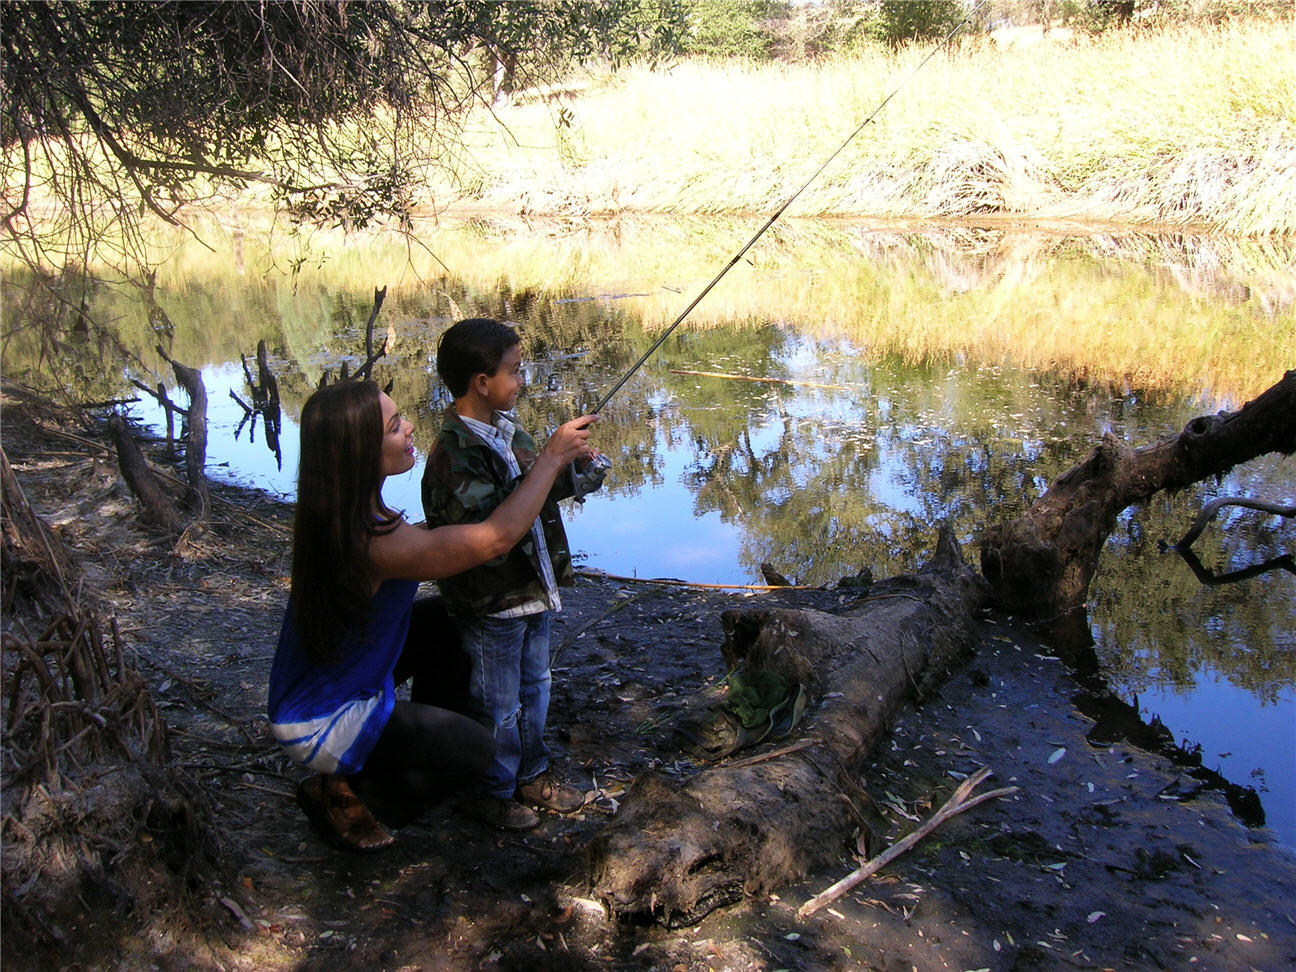 mommy-cat-and-dd-fishing-october-1-2009